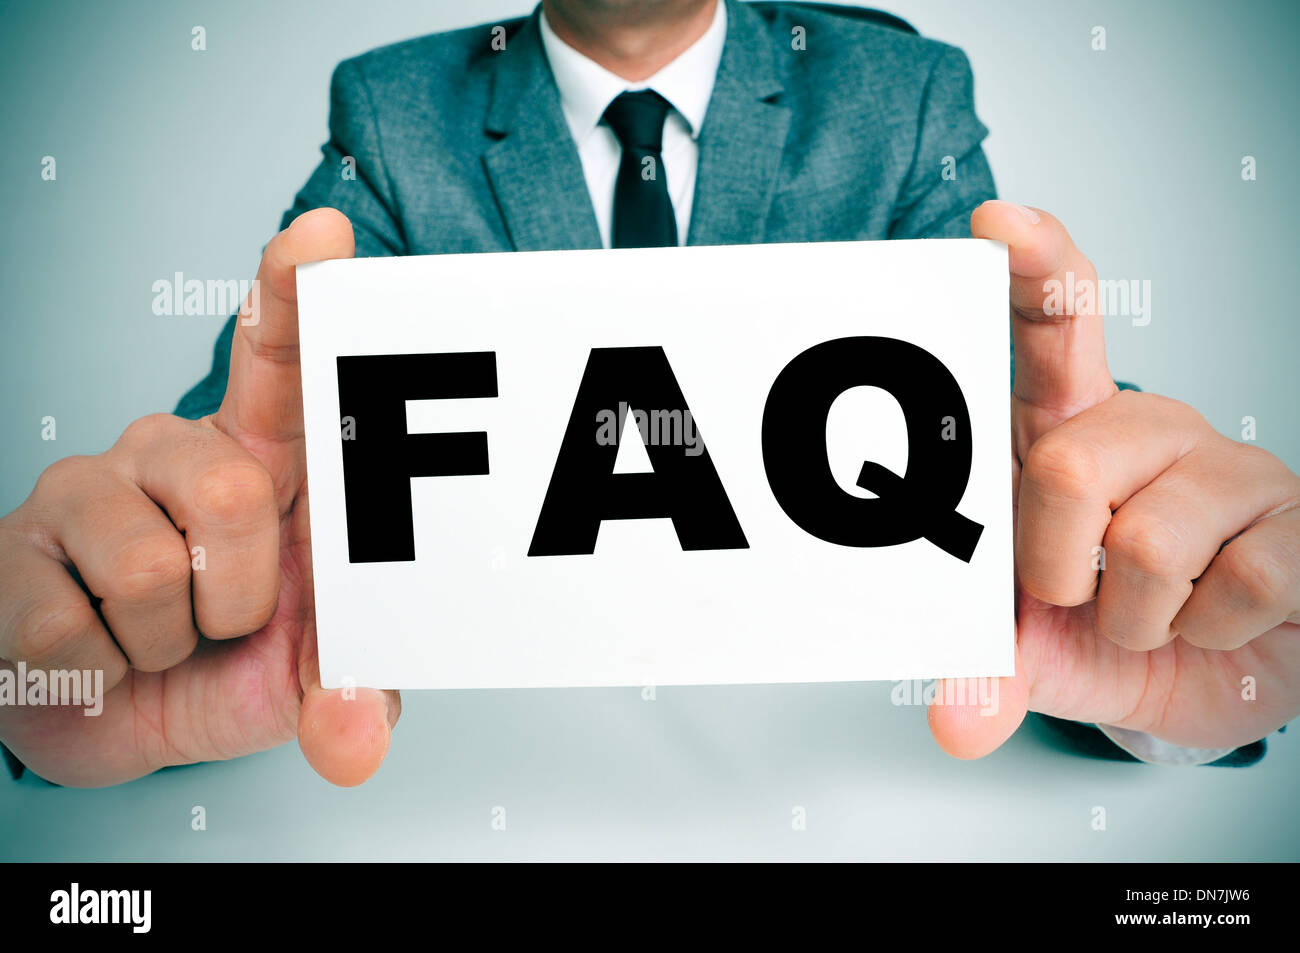 a man wearing a suit sitting in a desk holding a signboard with the word FAQ, Frequently Asked Questions, written in it - Stock Image